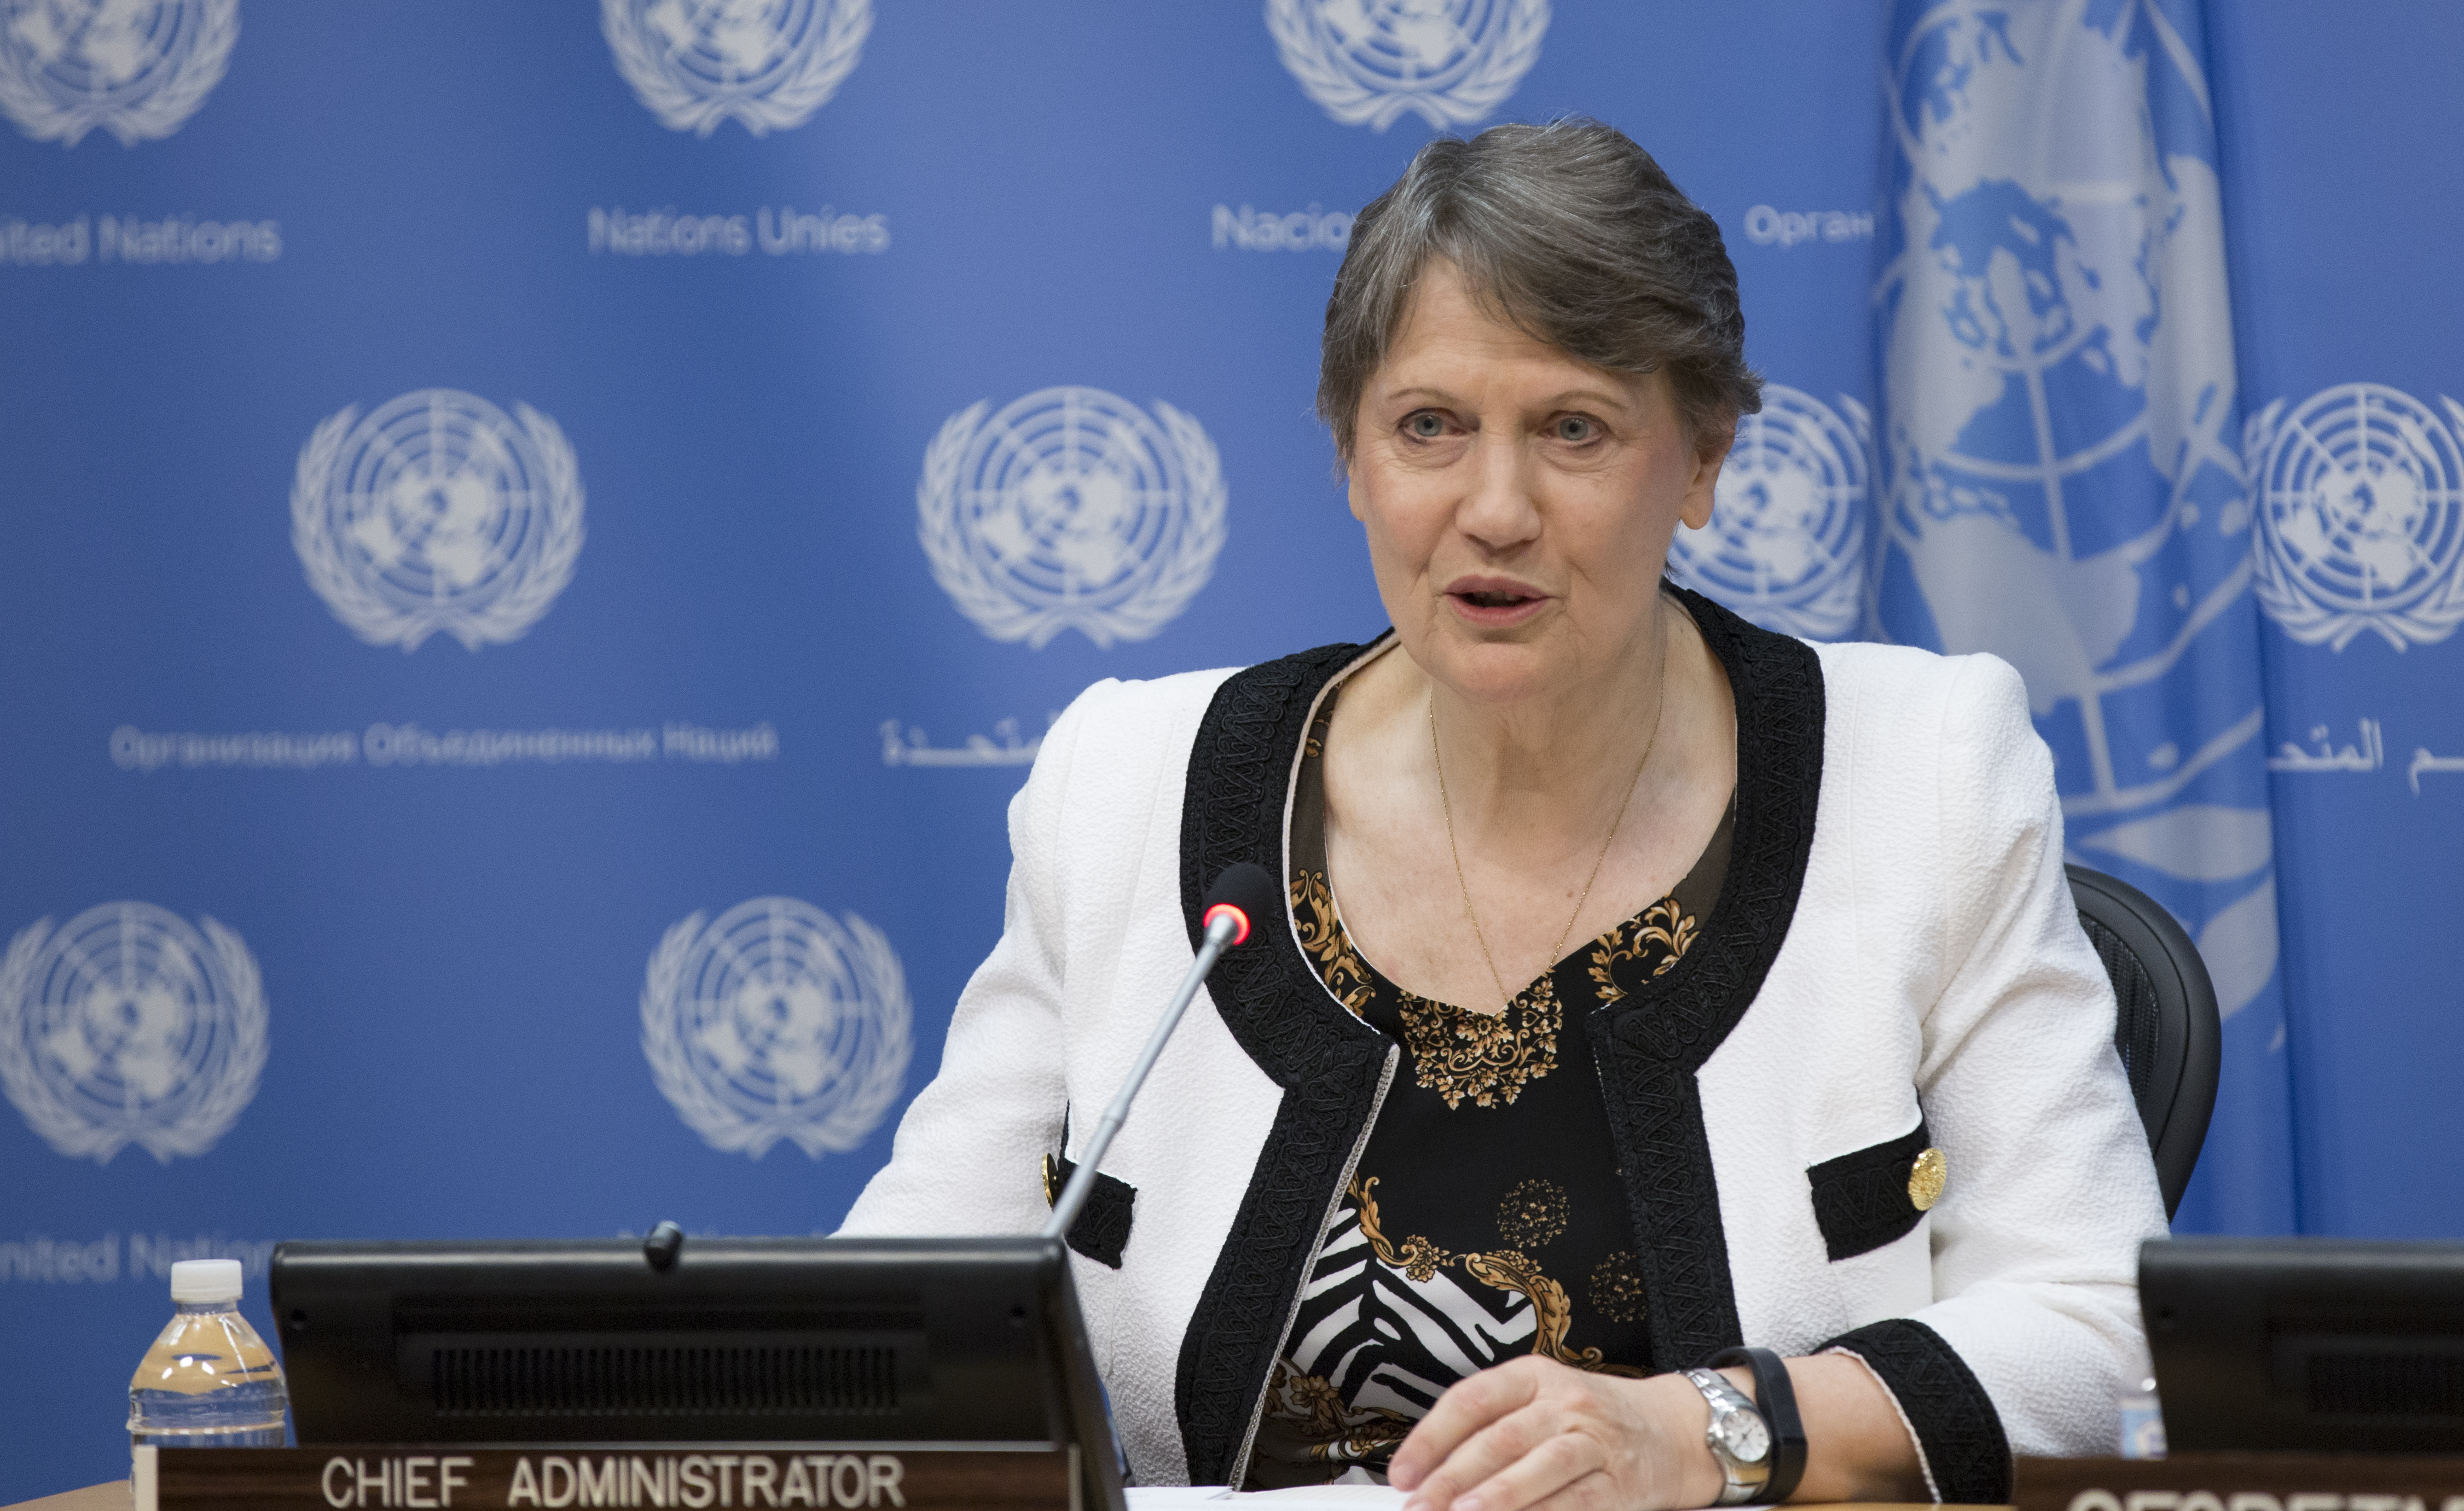 Helen Clark Becomes Fourth Woman to Run for U.N. Top Job | Time